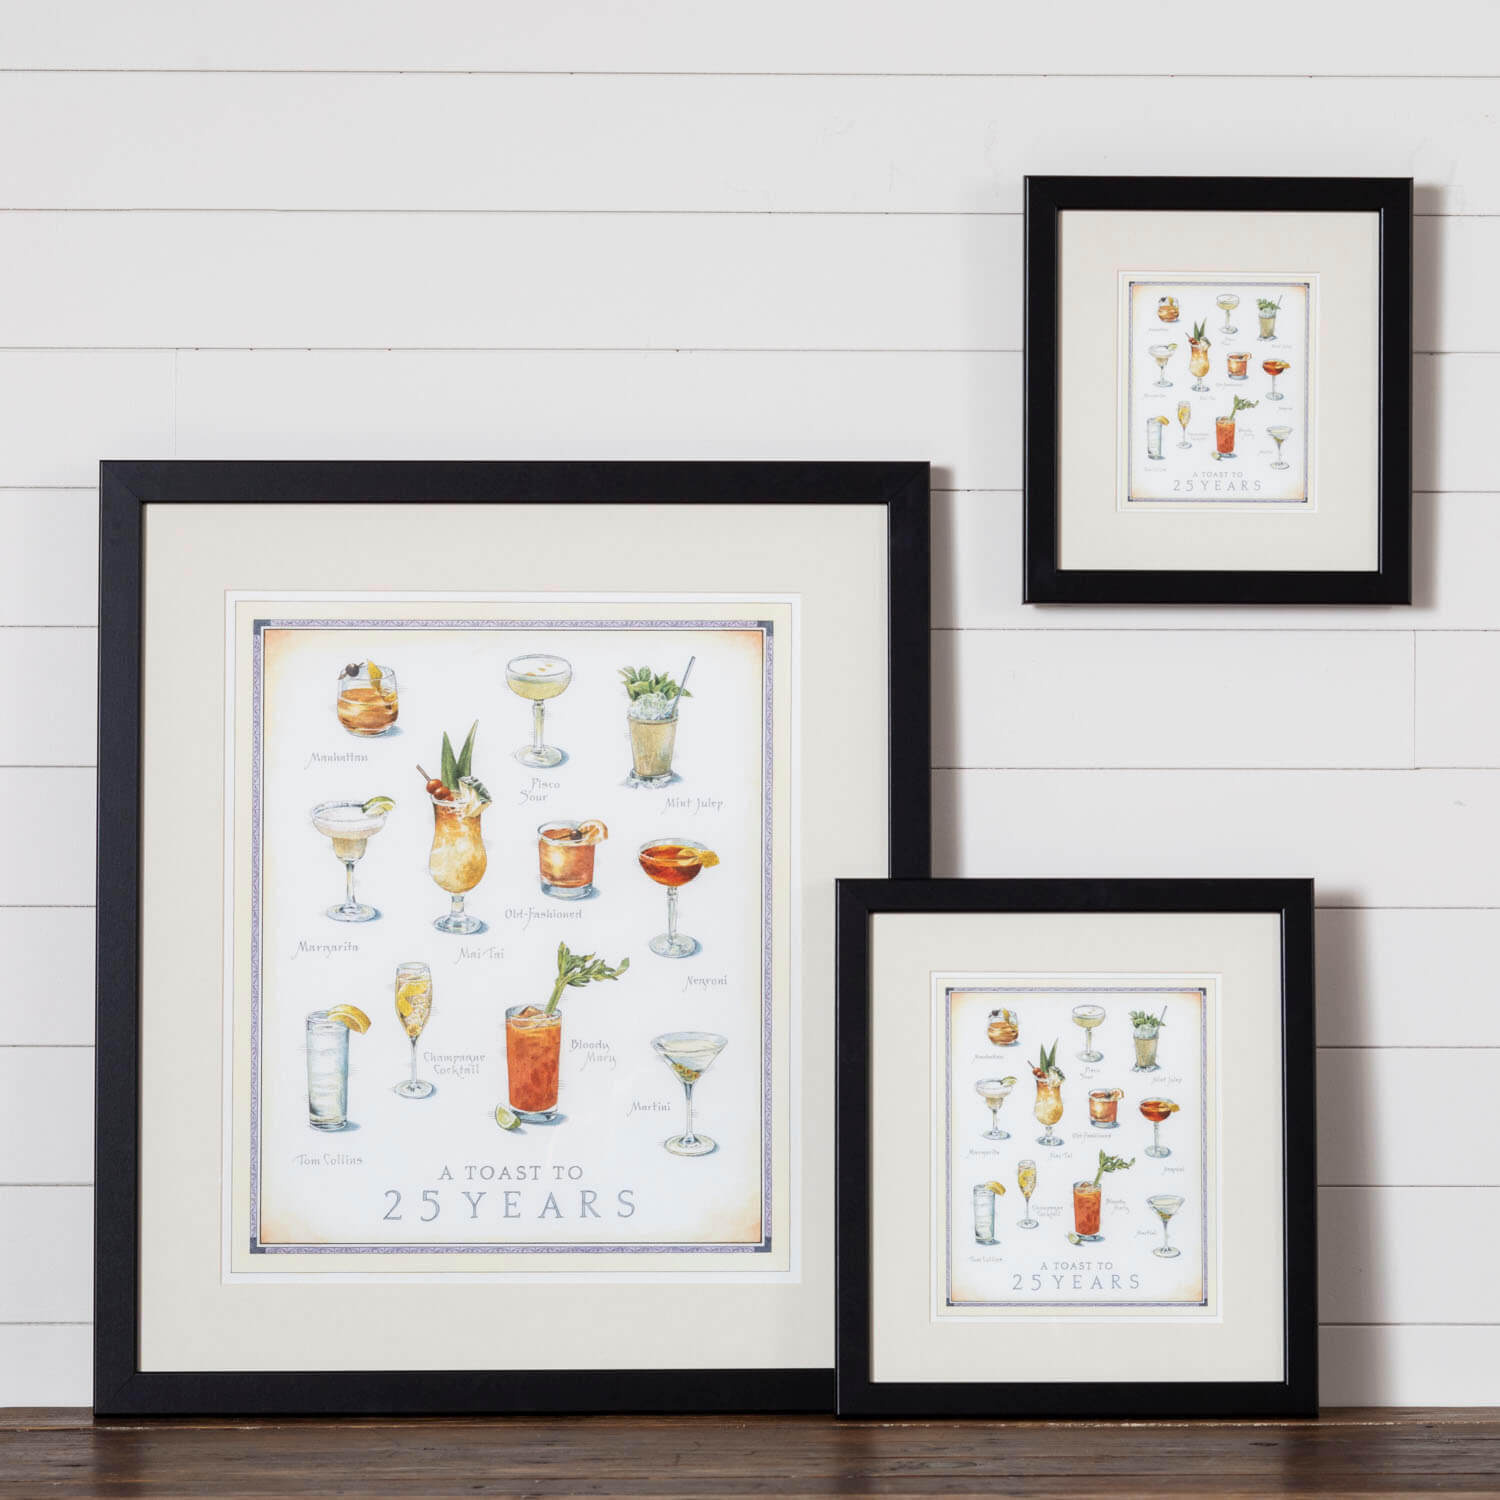 Cook's Illustrated Framed Print: Cocktails